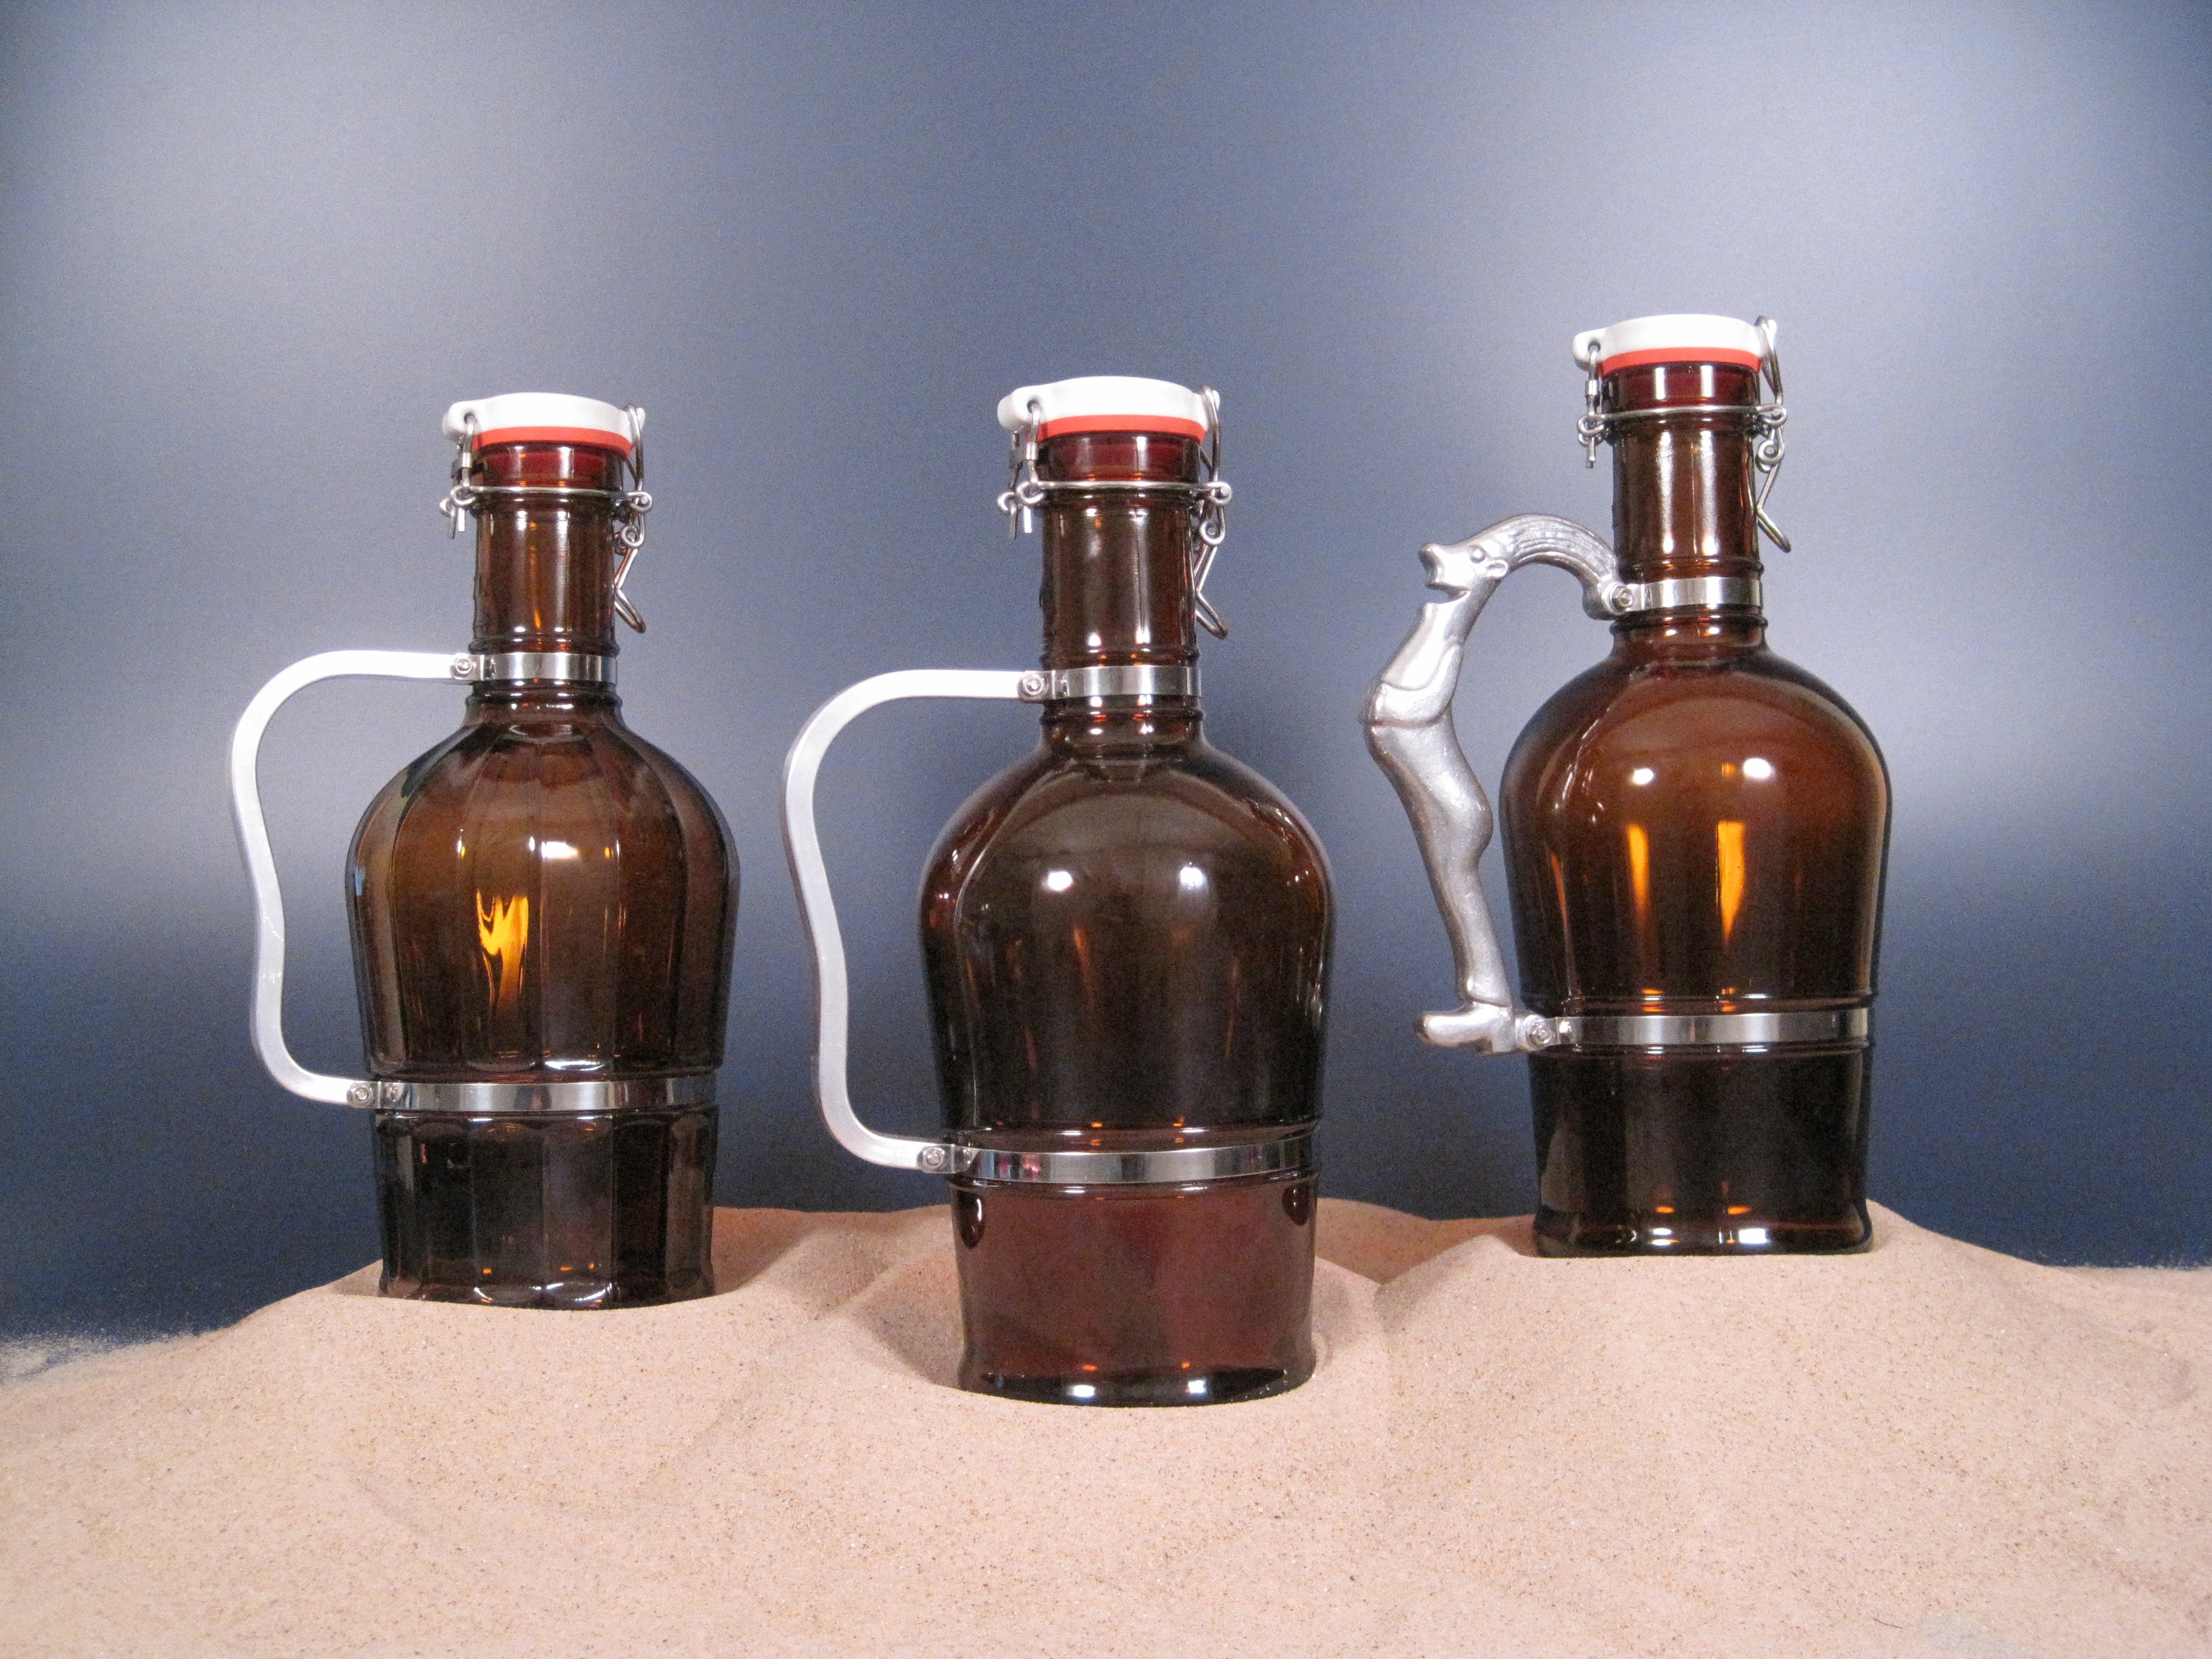 Metal Handled Growlers Growler sold by Land & Sea Packaging